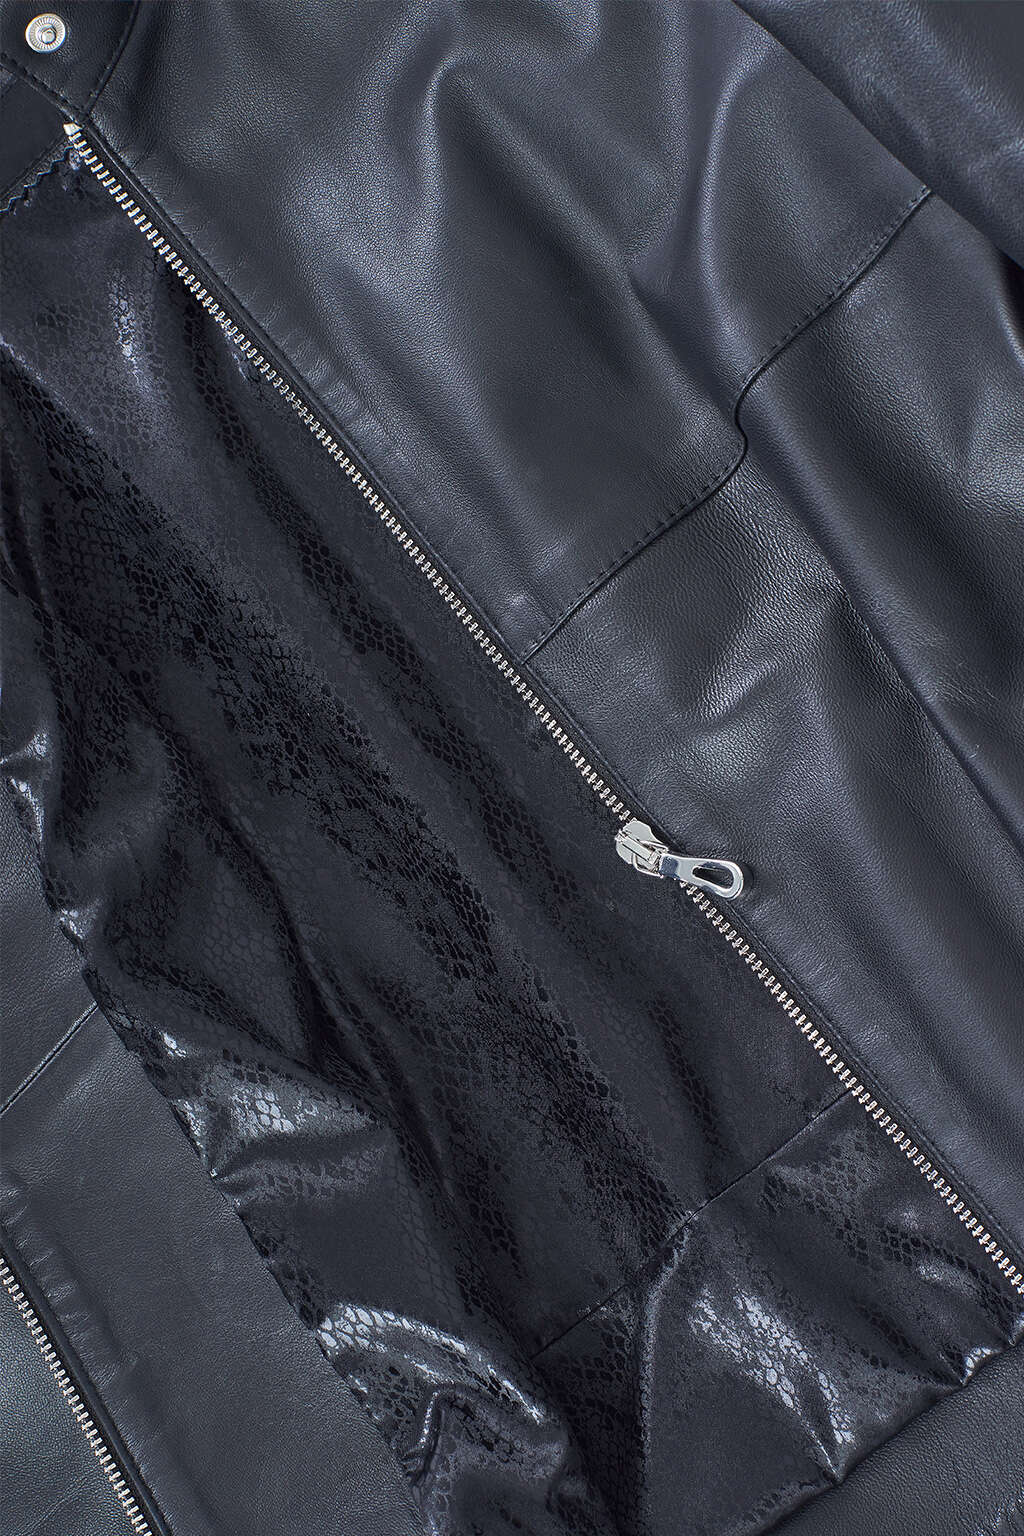 Zipper and Inner Lining Detail of Jet Black Leather Moto Jacket